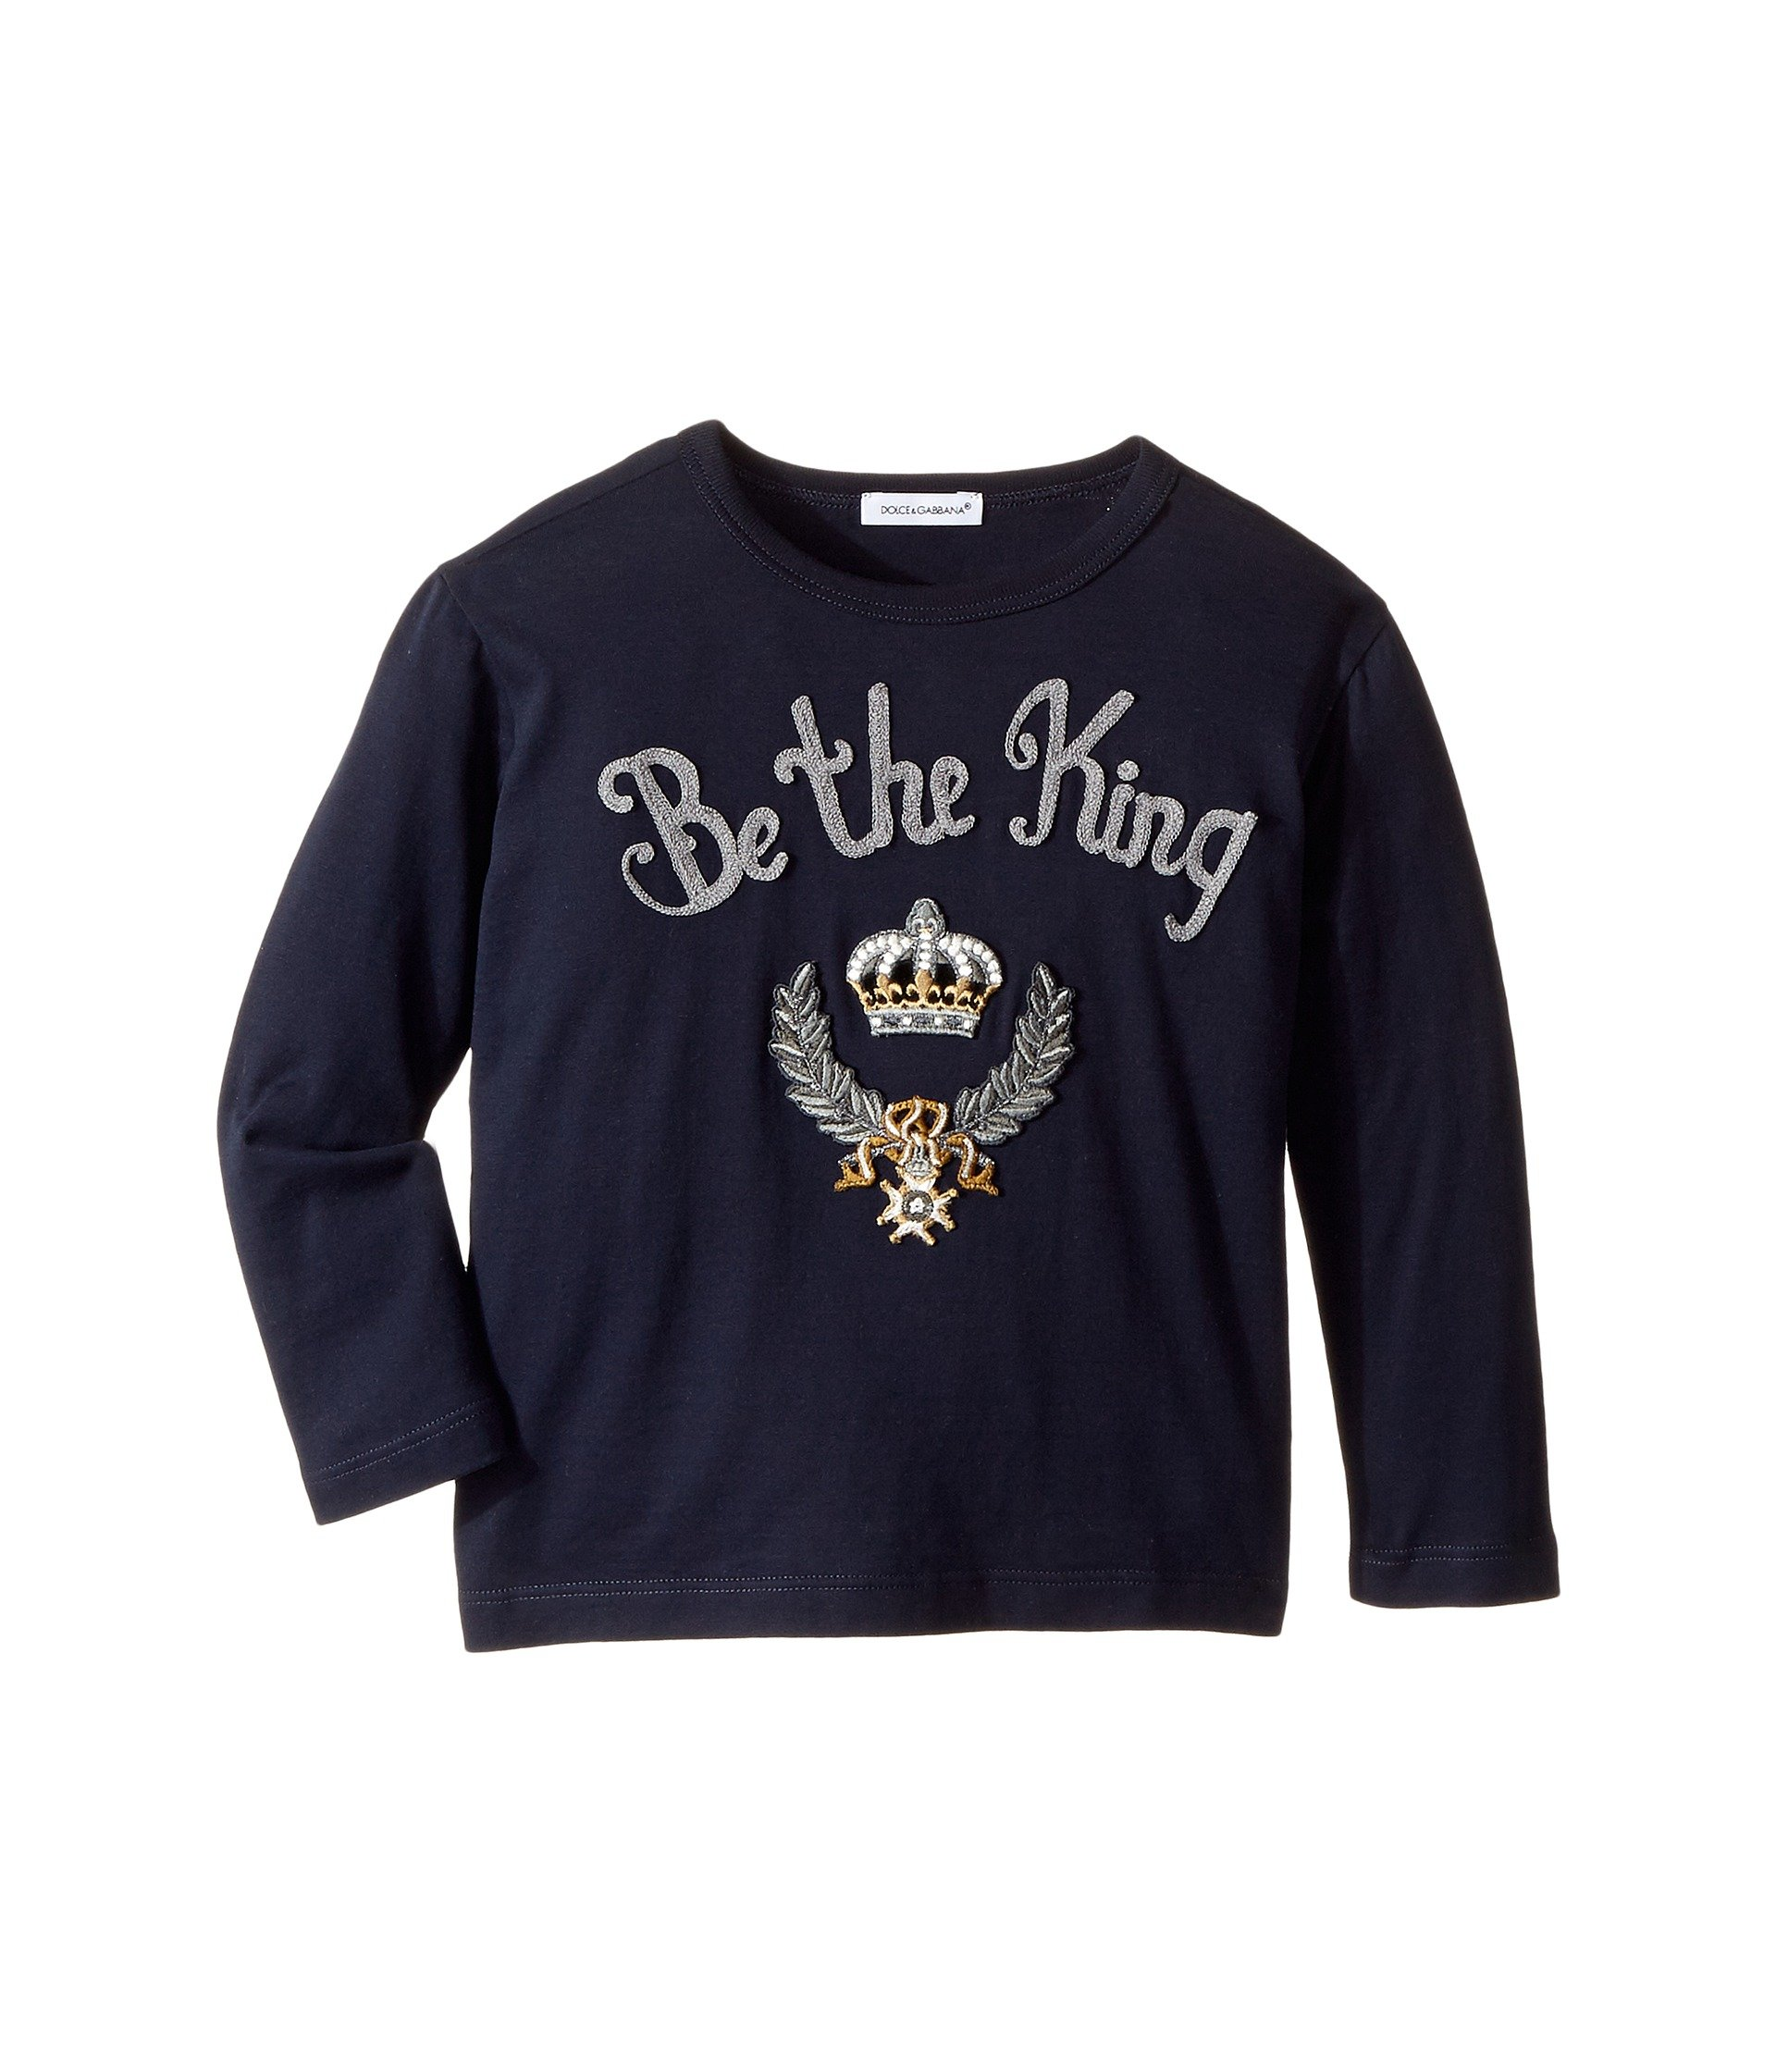 Dolce & Gabbana Kids  Baby Boy's Be The King T-Shirt (Toddler/Little Kids) Blue T-Shirt by Dolce & Gabbana